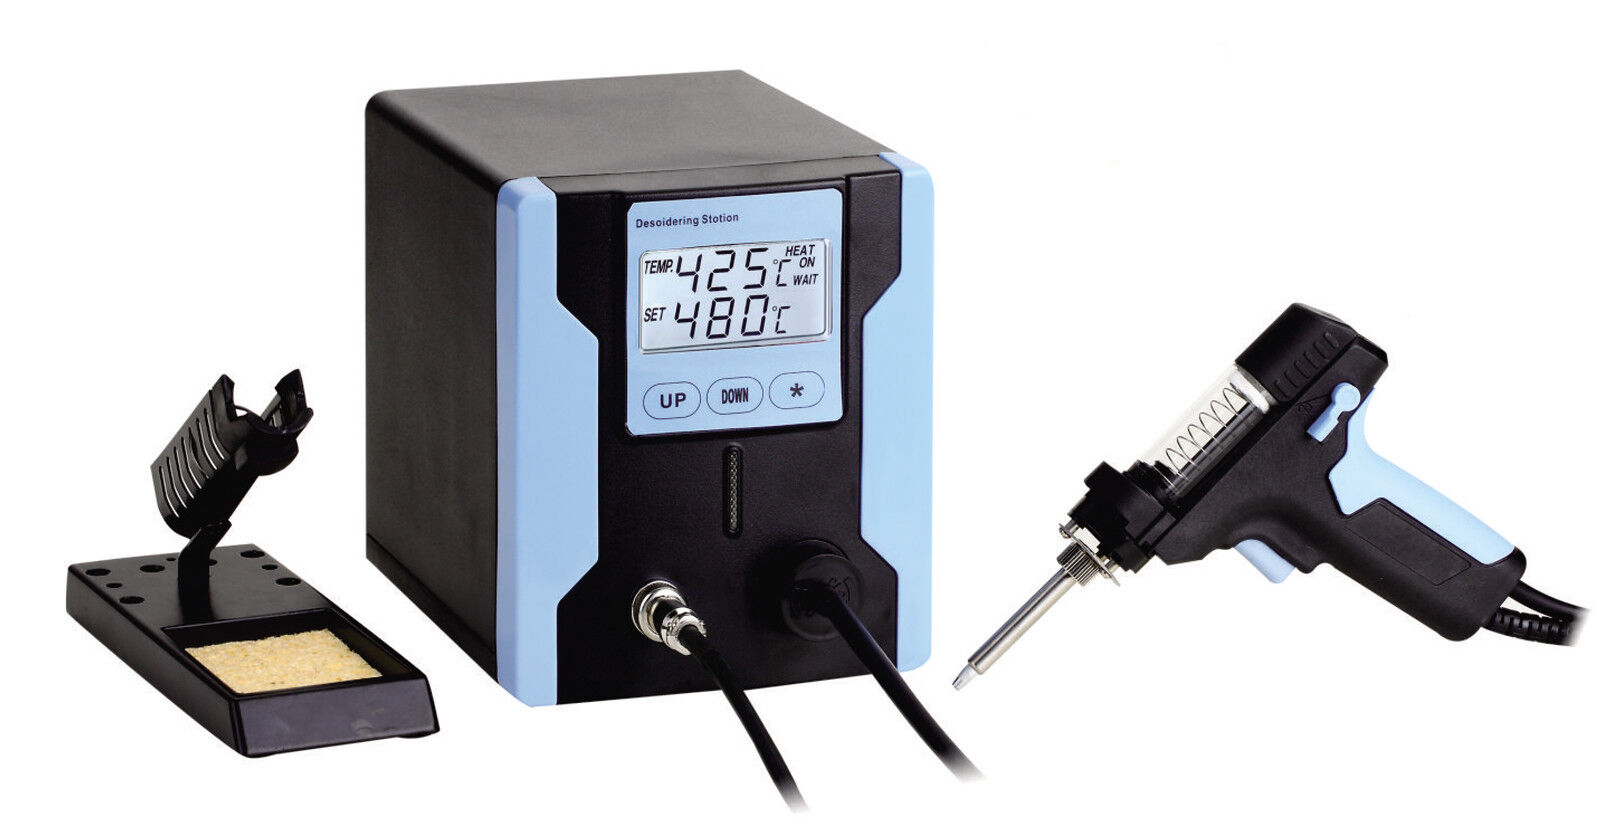 FR-PHONECASEONLINE LEAD FREE DESOLDERING STATION WITH LCD PANEL ZD-8915 Blau110V